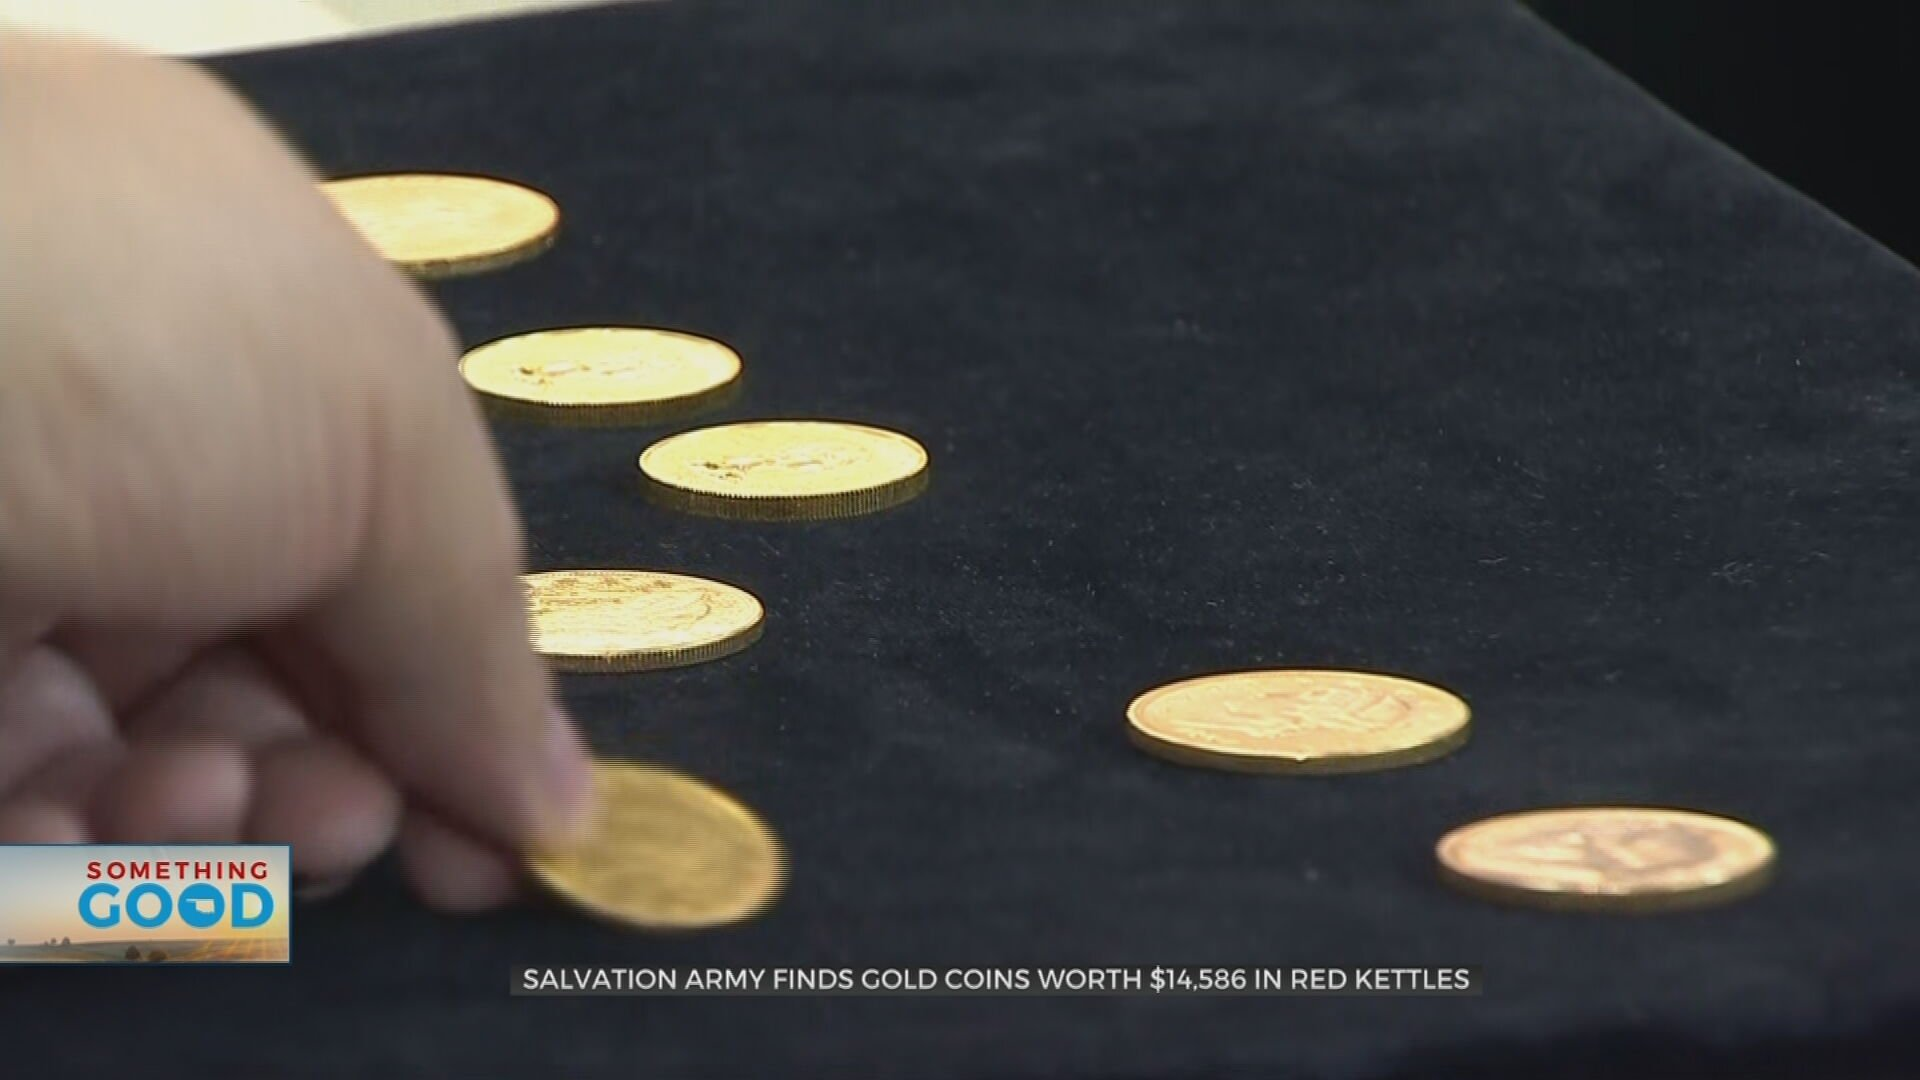 Tulsa Salvation Army Finds Gold Coins Worth Over $14,000 In Red Kettles